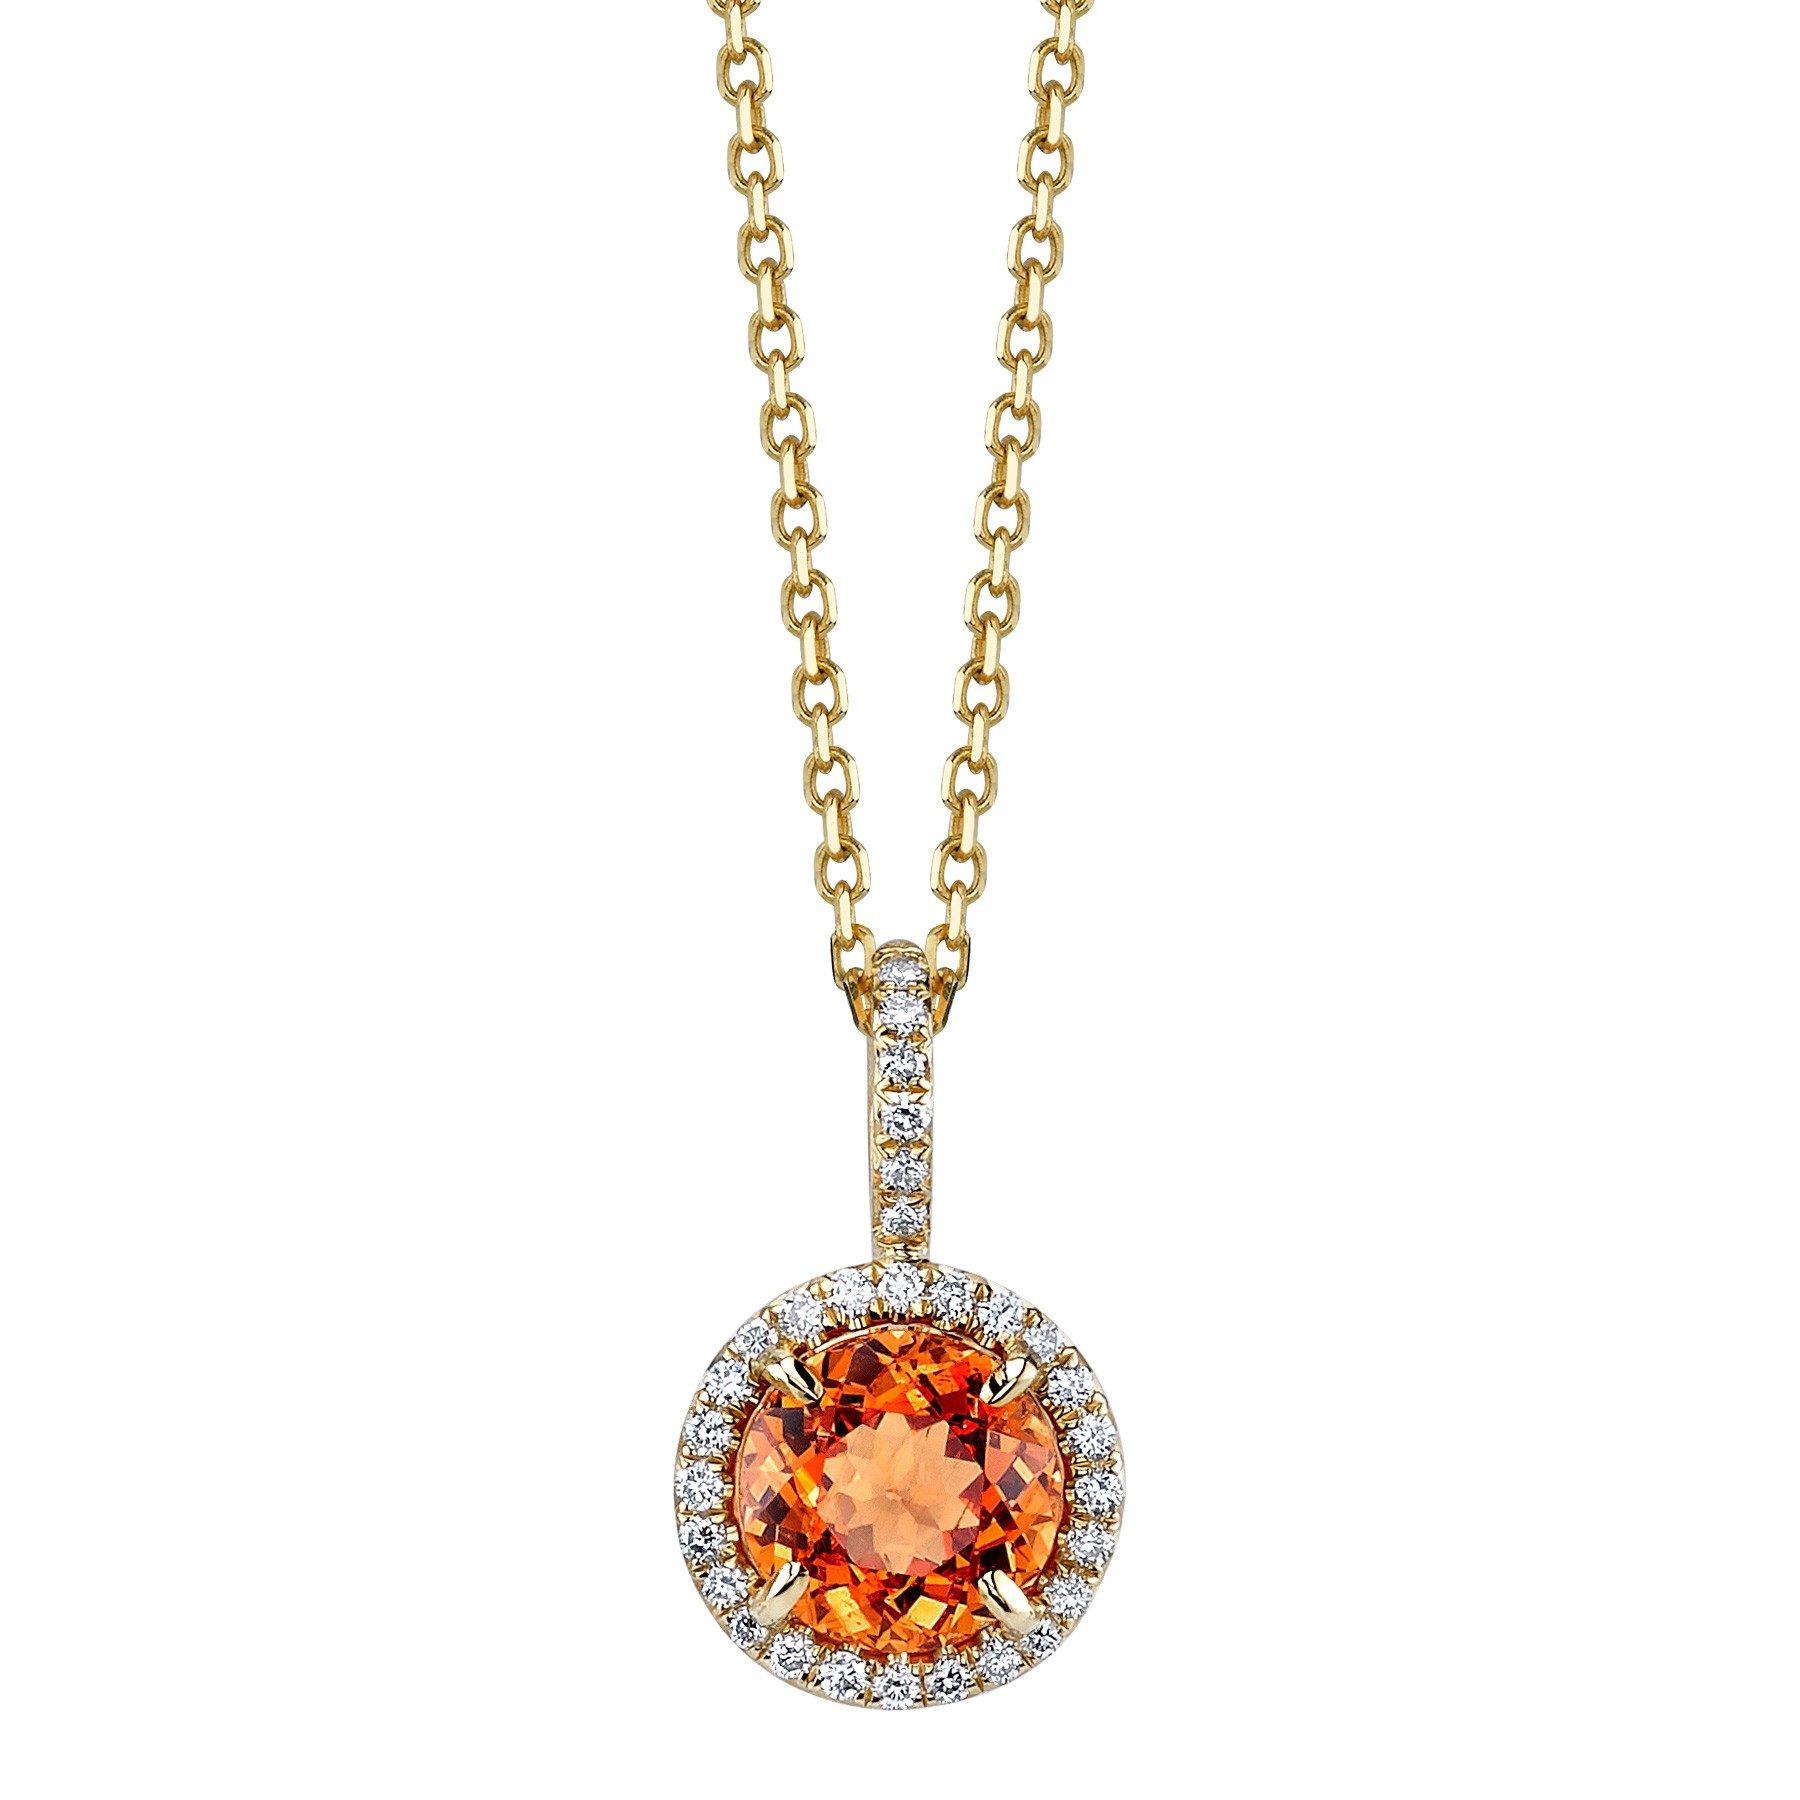 Orange Spessartite Garnet Pendant